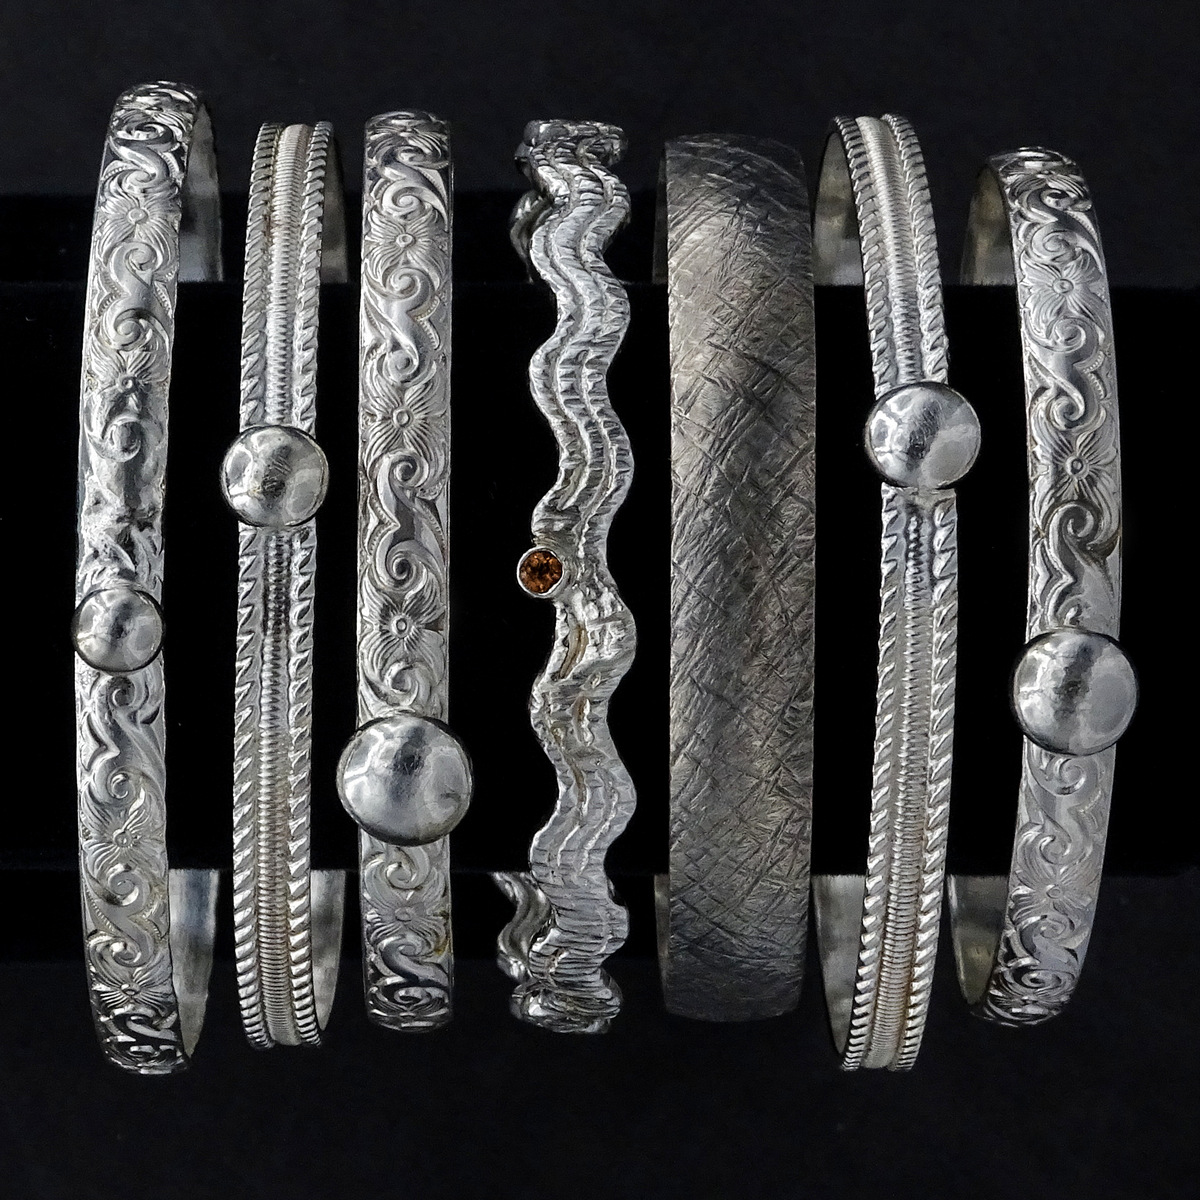 ASSORTED STUDDED & TEXTURED BANGLE BRACELETS,  2.5 inches in diameter